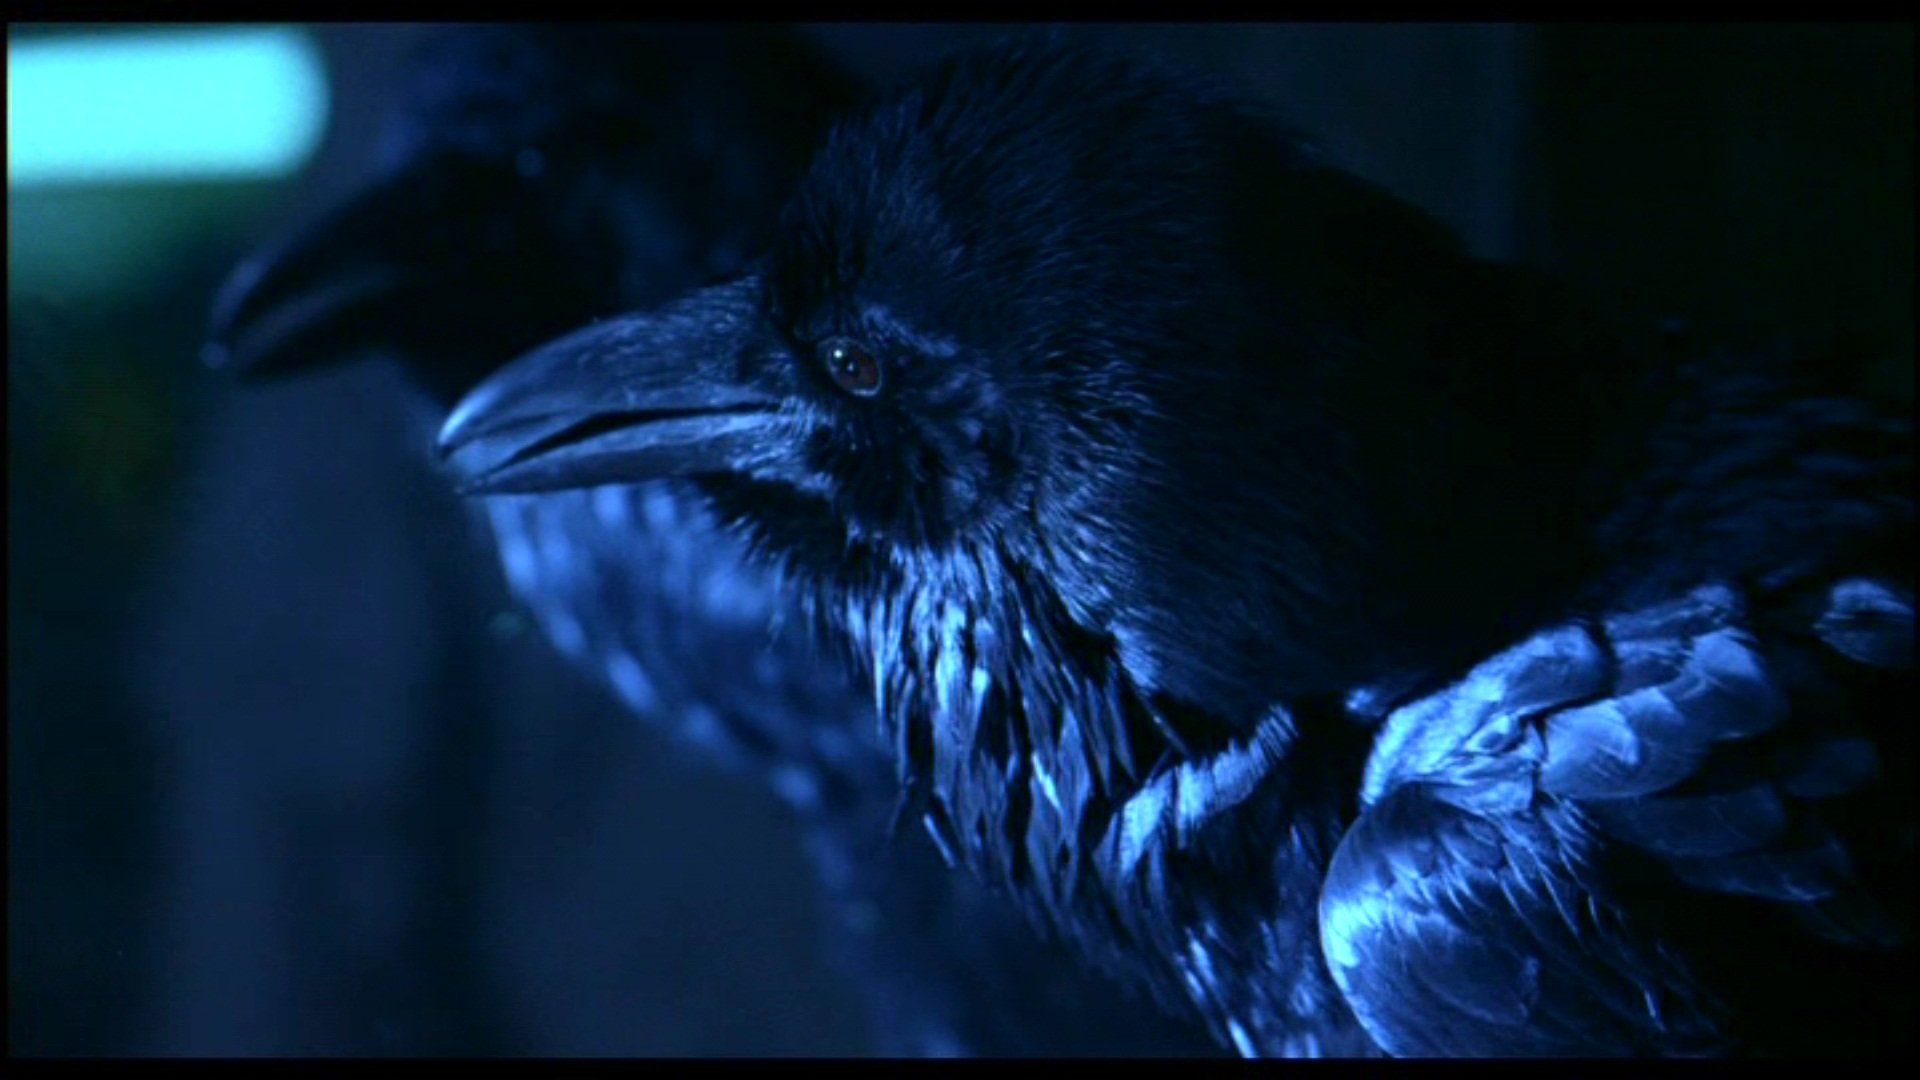 The Crow wallpapers 1920x1080 Full HD